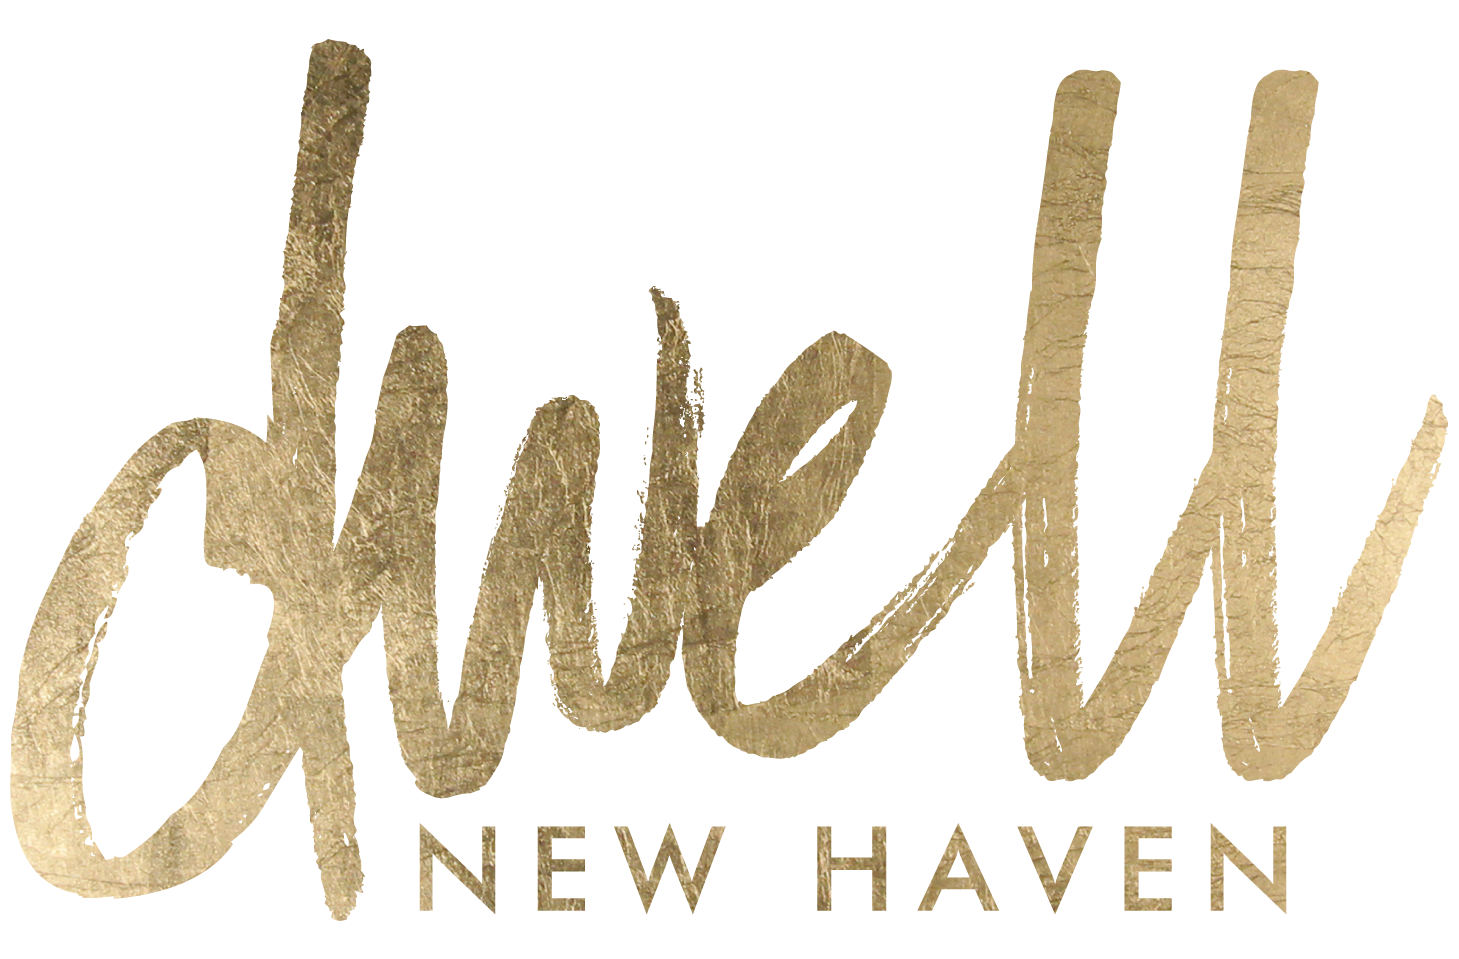 dwellnewhaven